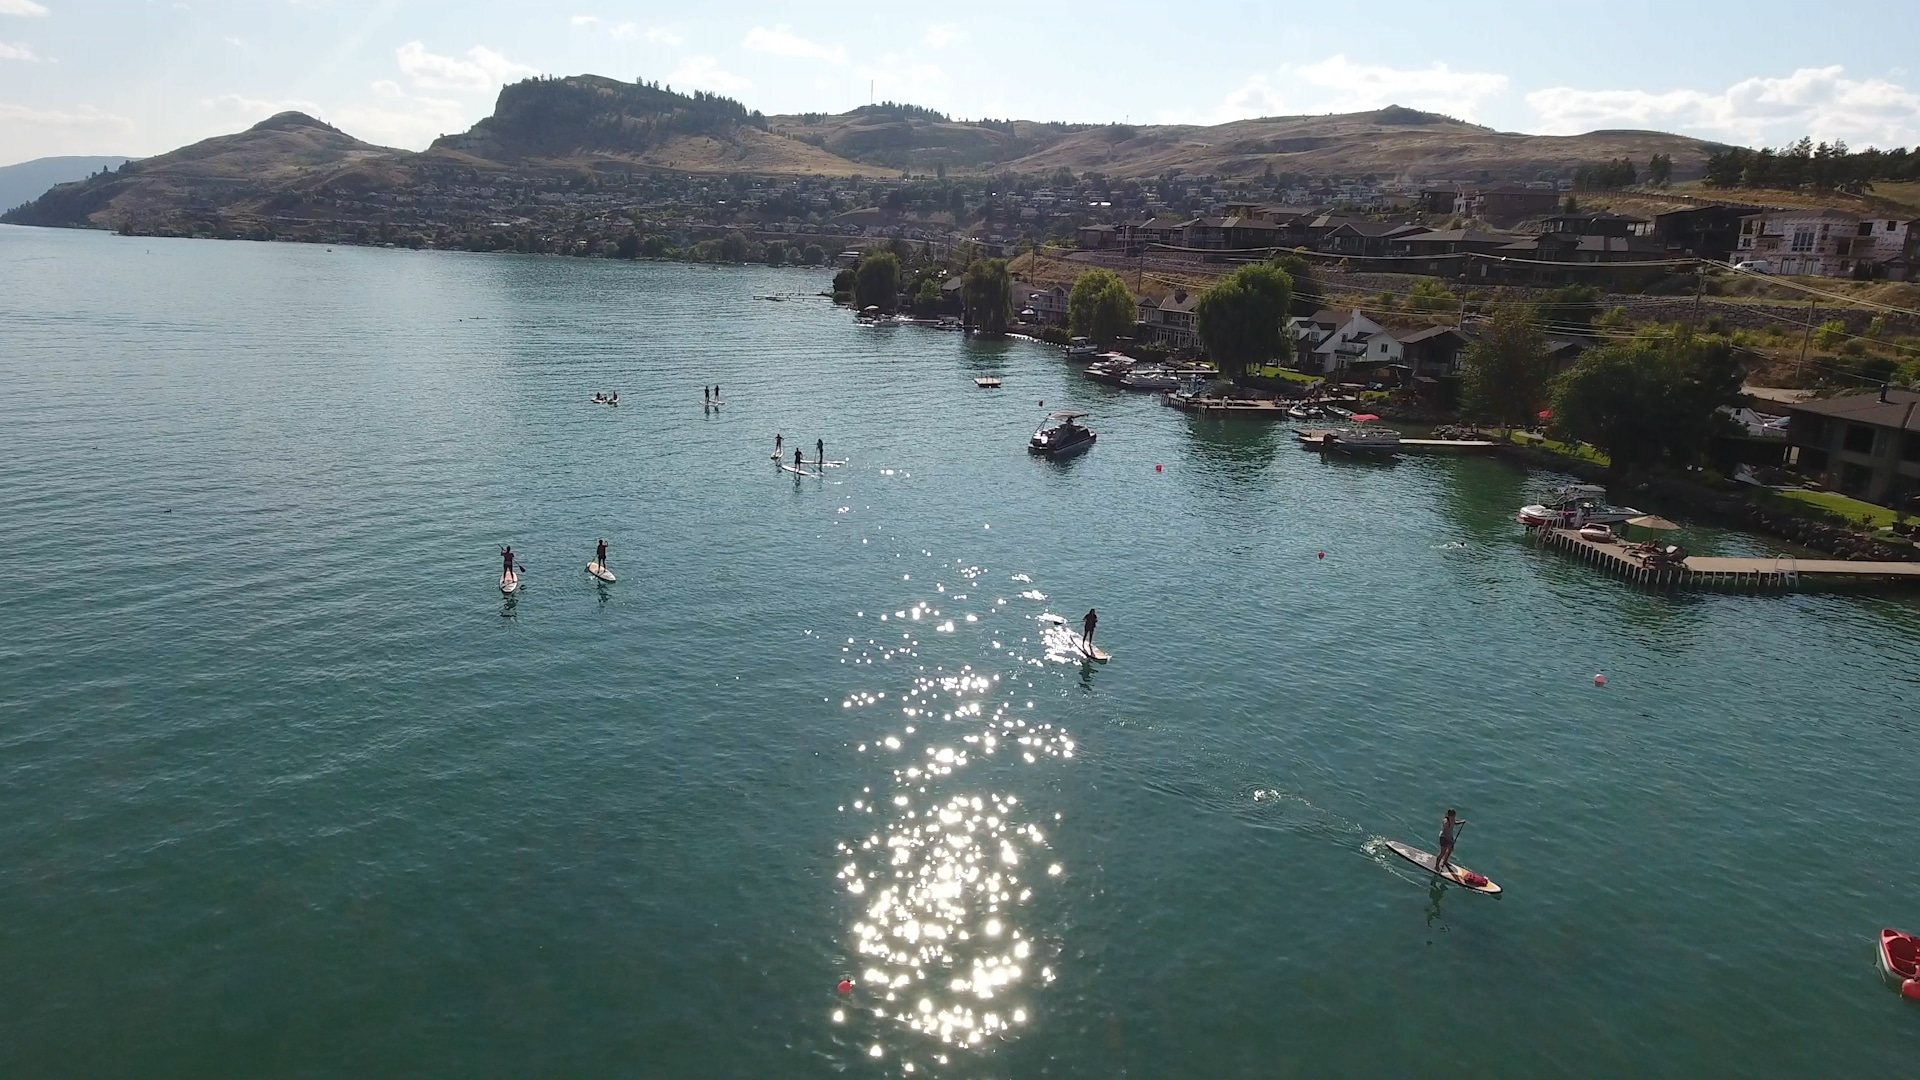 Kal Beach on Kalamalka Lake in Vernon BC - Paddle Boarders 3